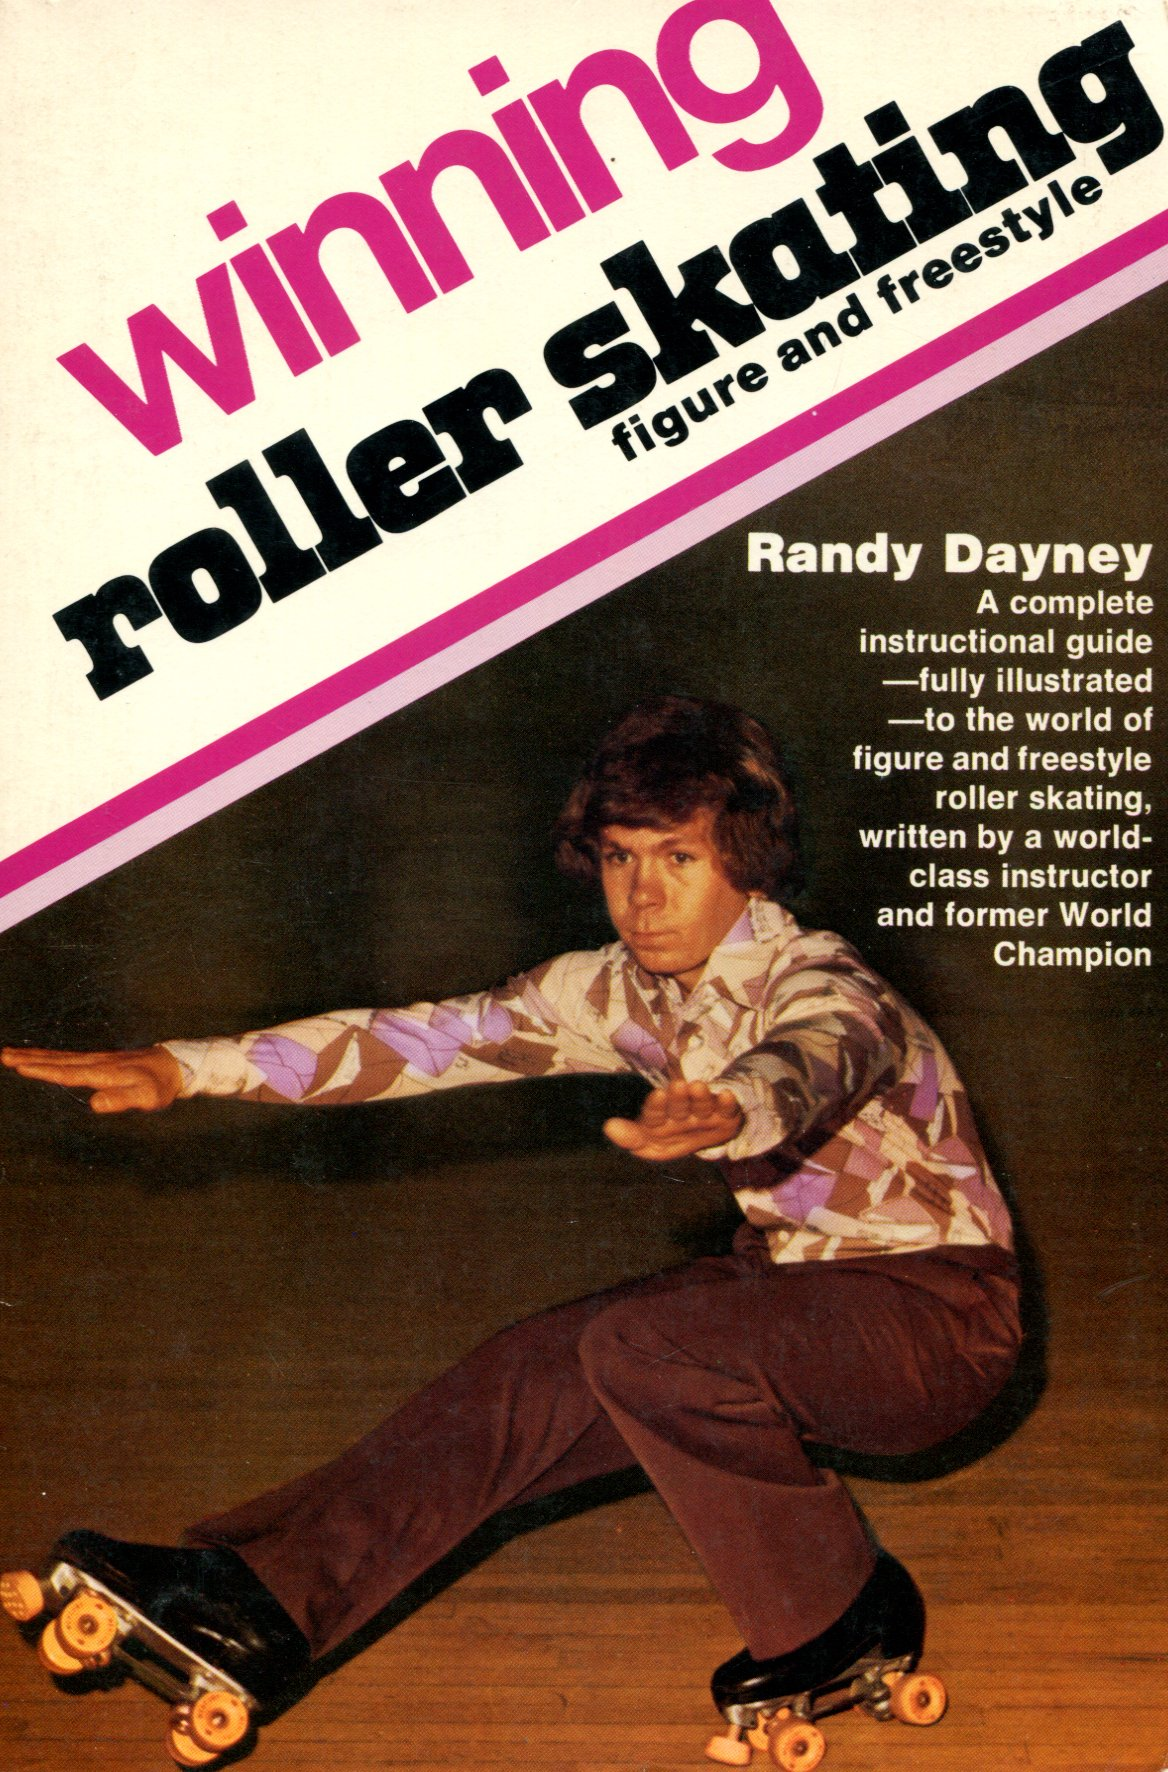 Amazon.com: Winning Roller Skating: Figure and Freestyle ...